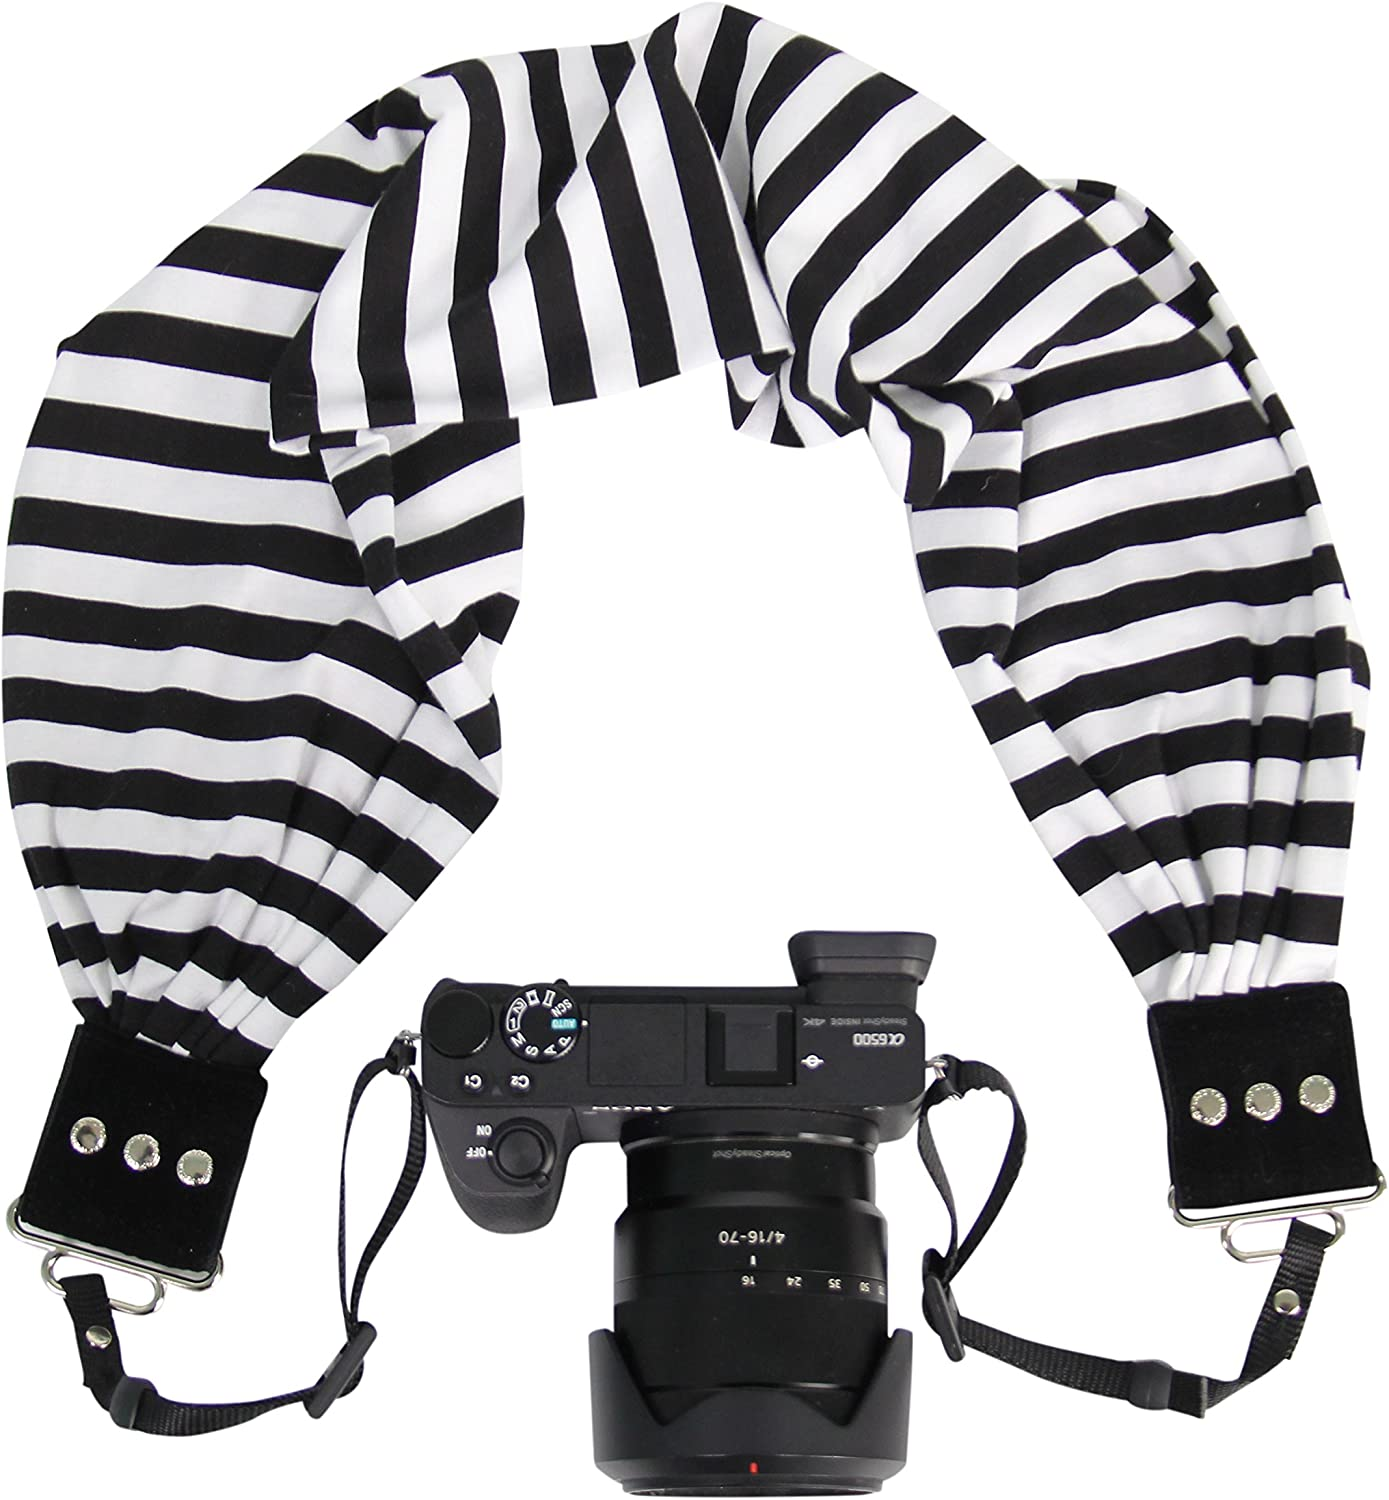 Zipper Pocket Holds Your Phone Keys Capturing Couture Scarf Camera Strap with Hidden Pocket Cash and Spare Memory Card Pocket Size: 6.5 Opening x 4 Deep Stretch Material Alia